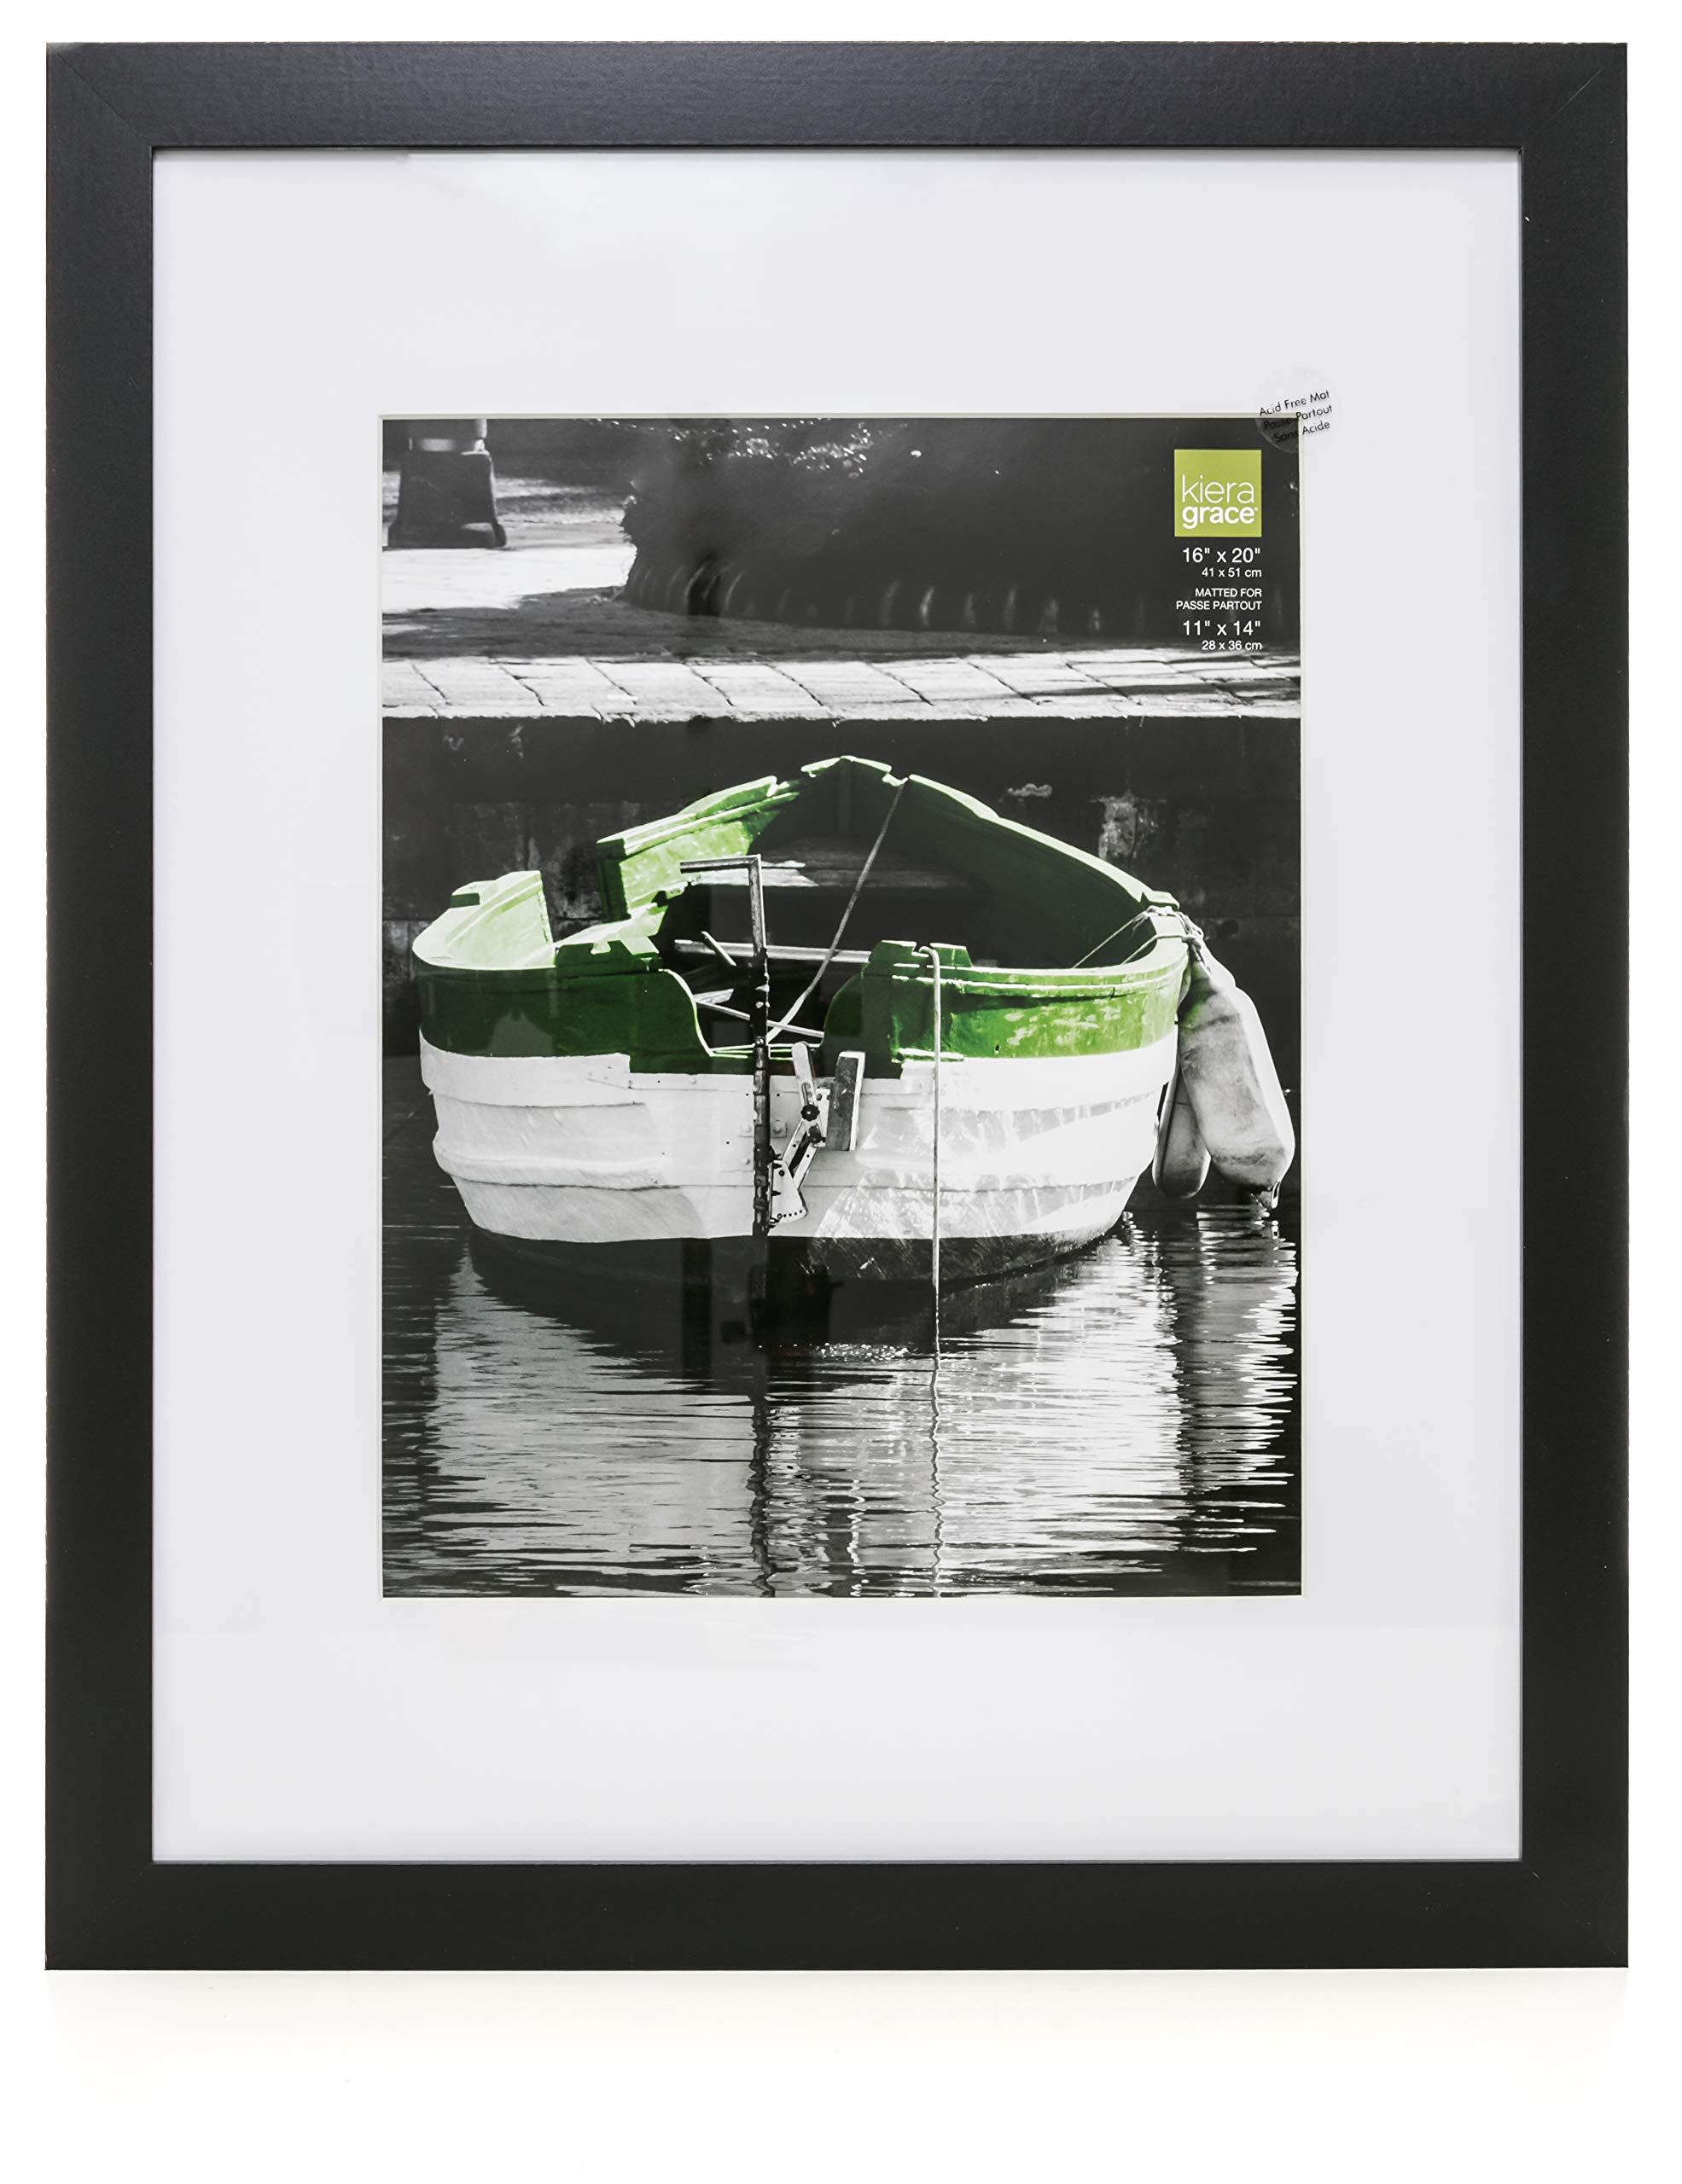 kieragrace Langford Wood Picture Frame, 16 by 20 Inch Matted for 11 by 14 Inch Photo, Black